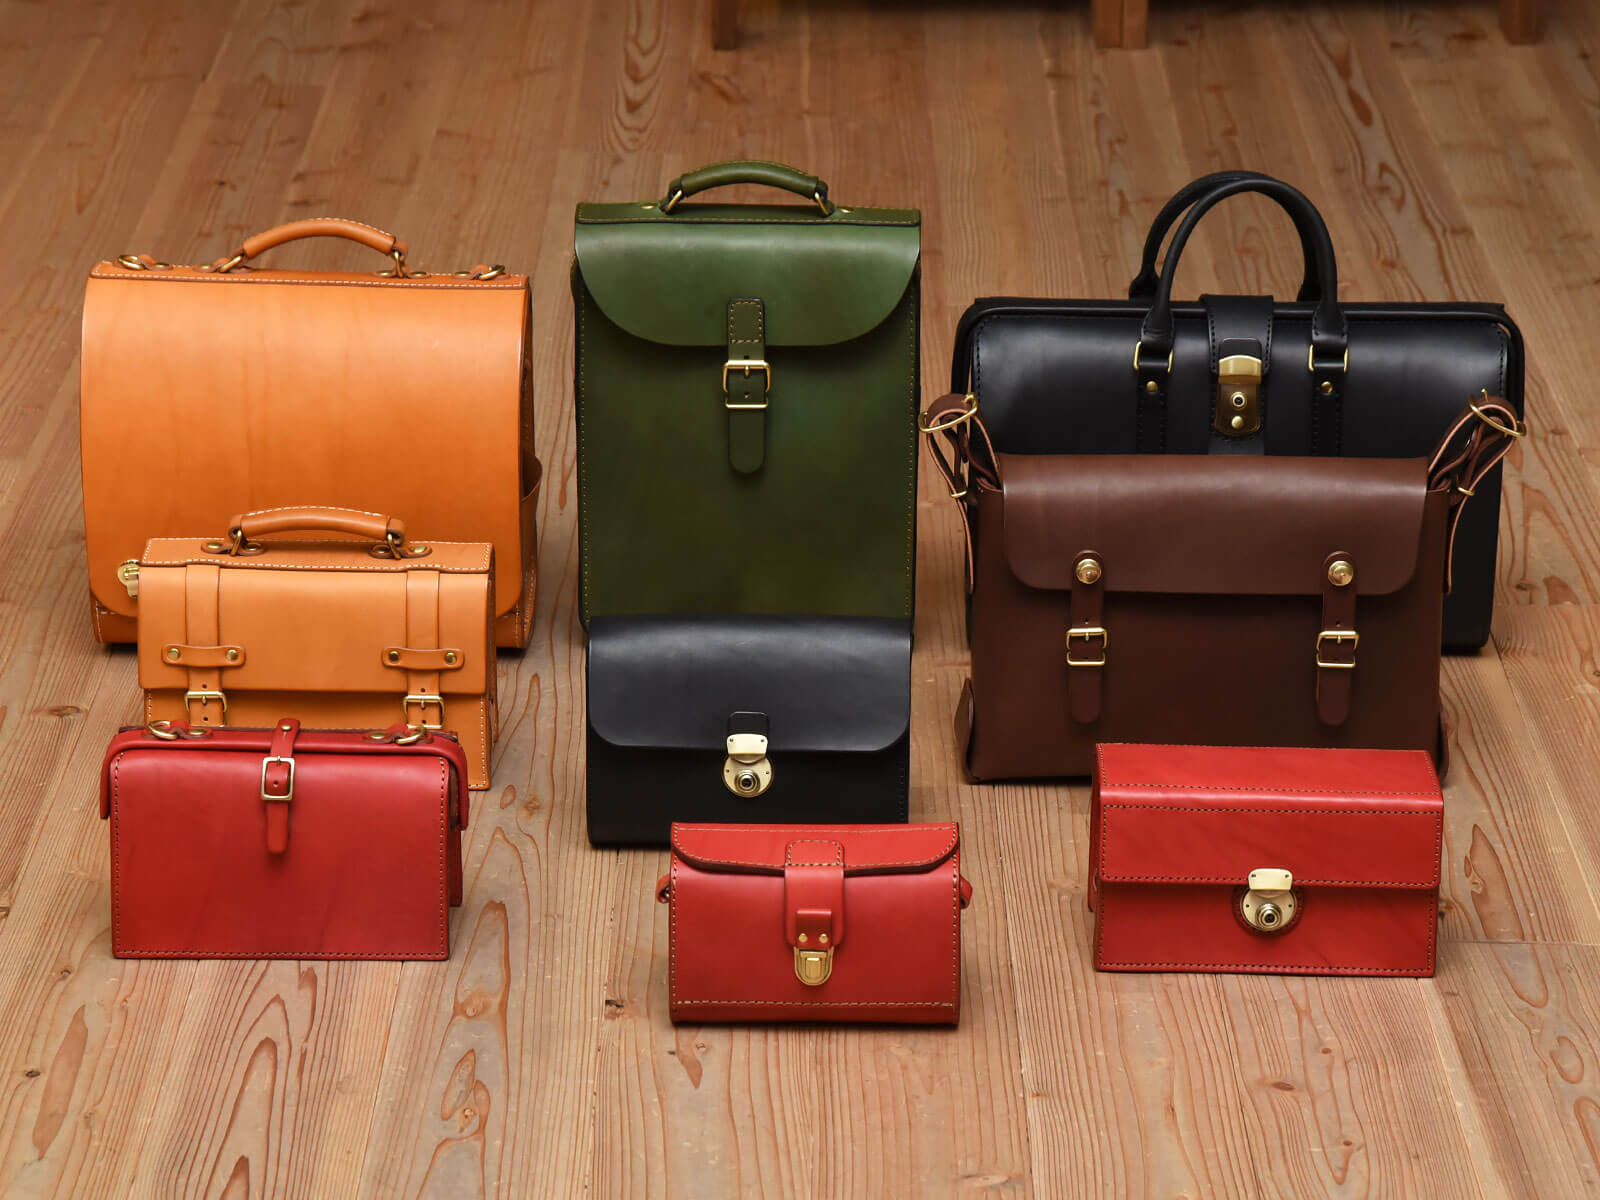 HARD LEATHER BAGS 2018